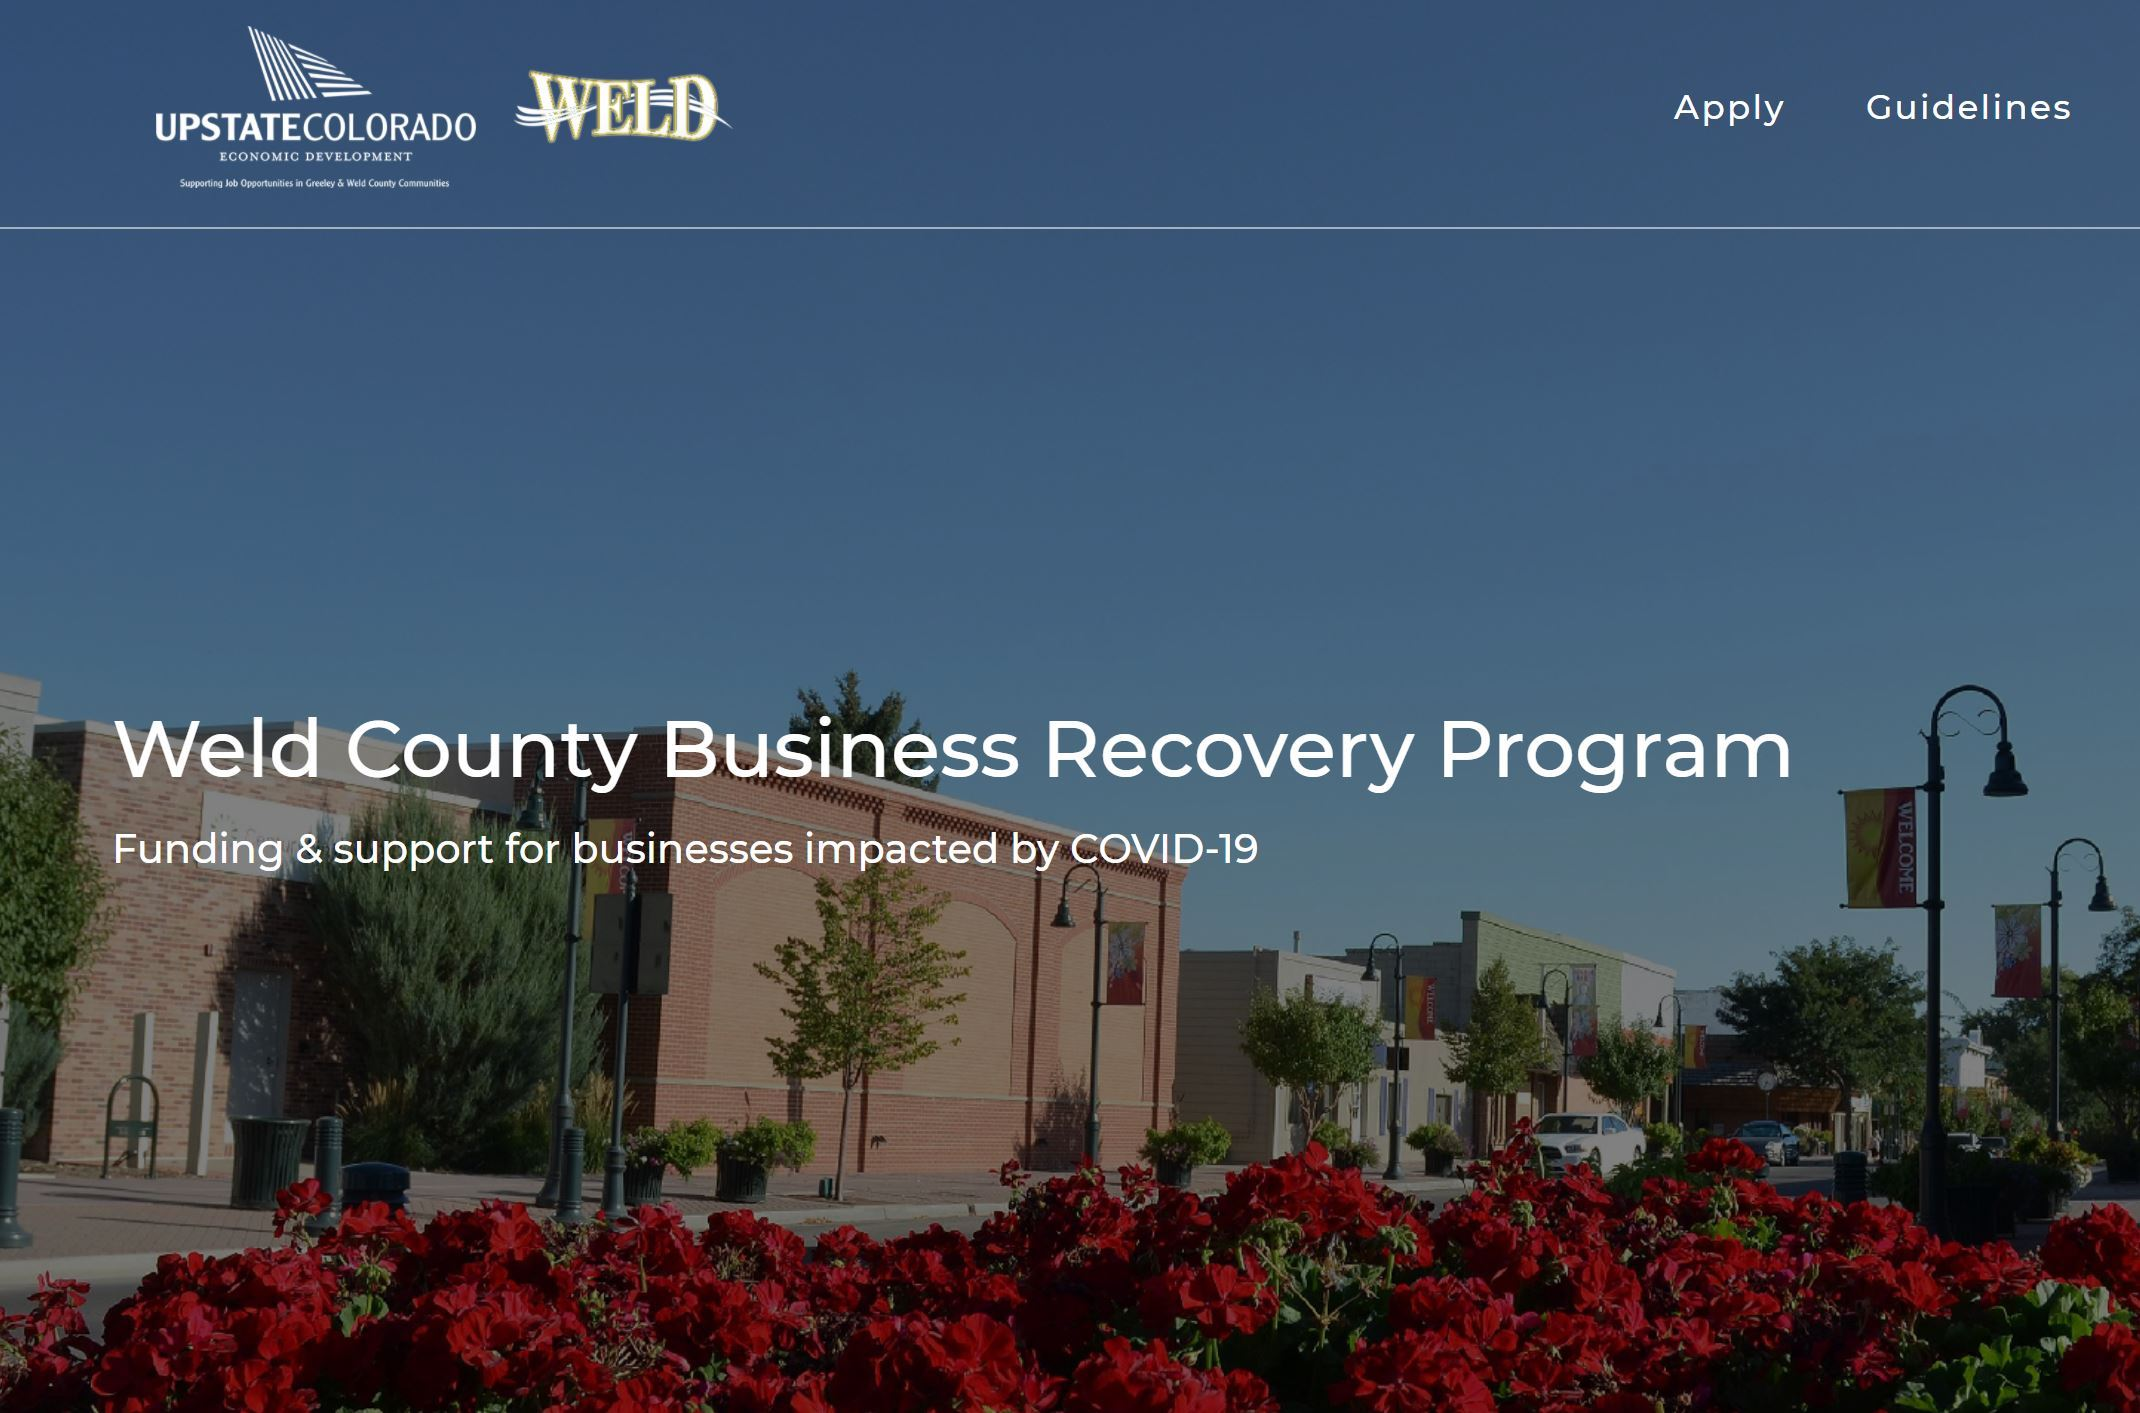 Weld Business Recovery Program Image